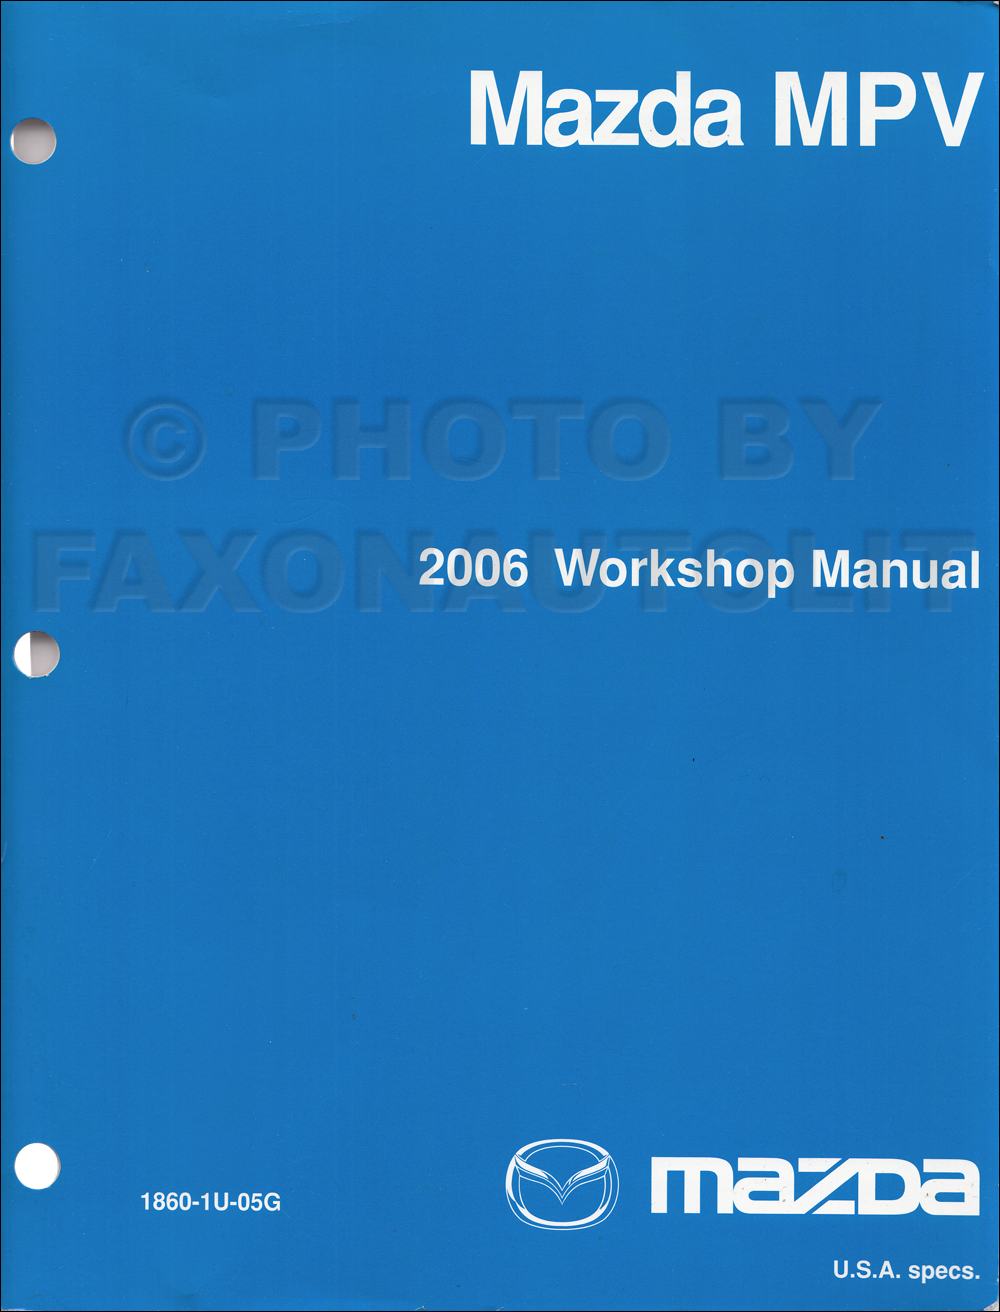 2005 Mazda MPV Repair Manual Original